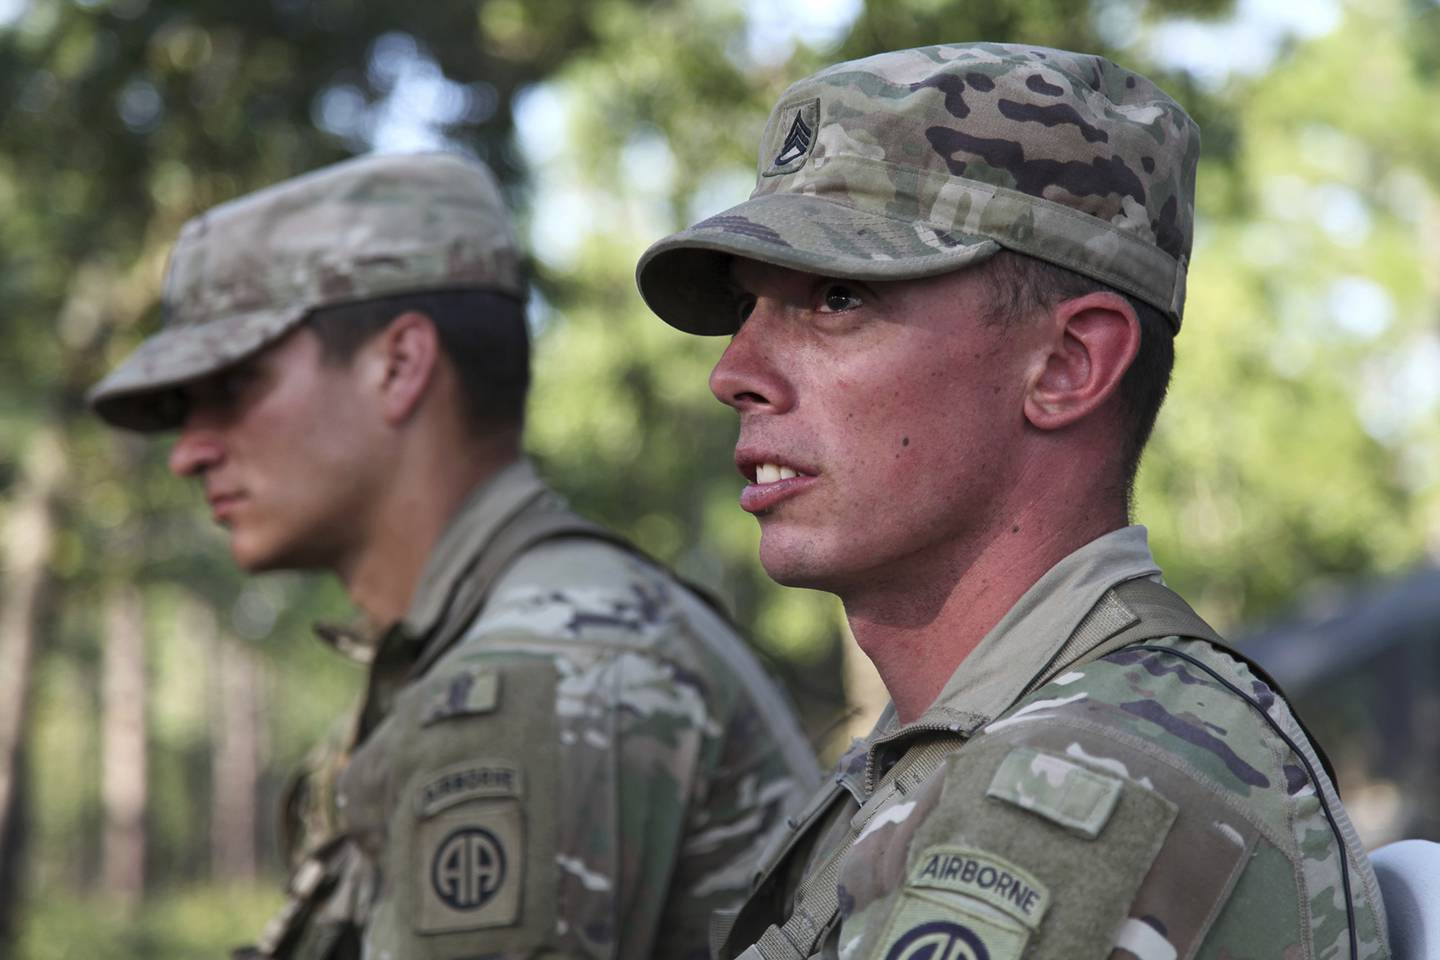 Staff Sgt. Ryan Graves talks about the death of his fellow solider, Staff Sgt. Jason Lowe, during an interview on Aug. 26, 2020, on Fort Bragg, N.C.